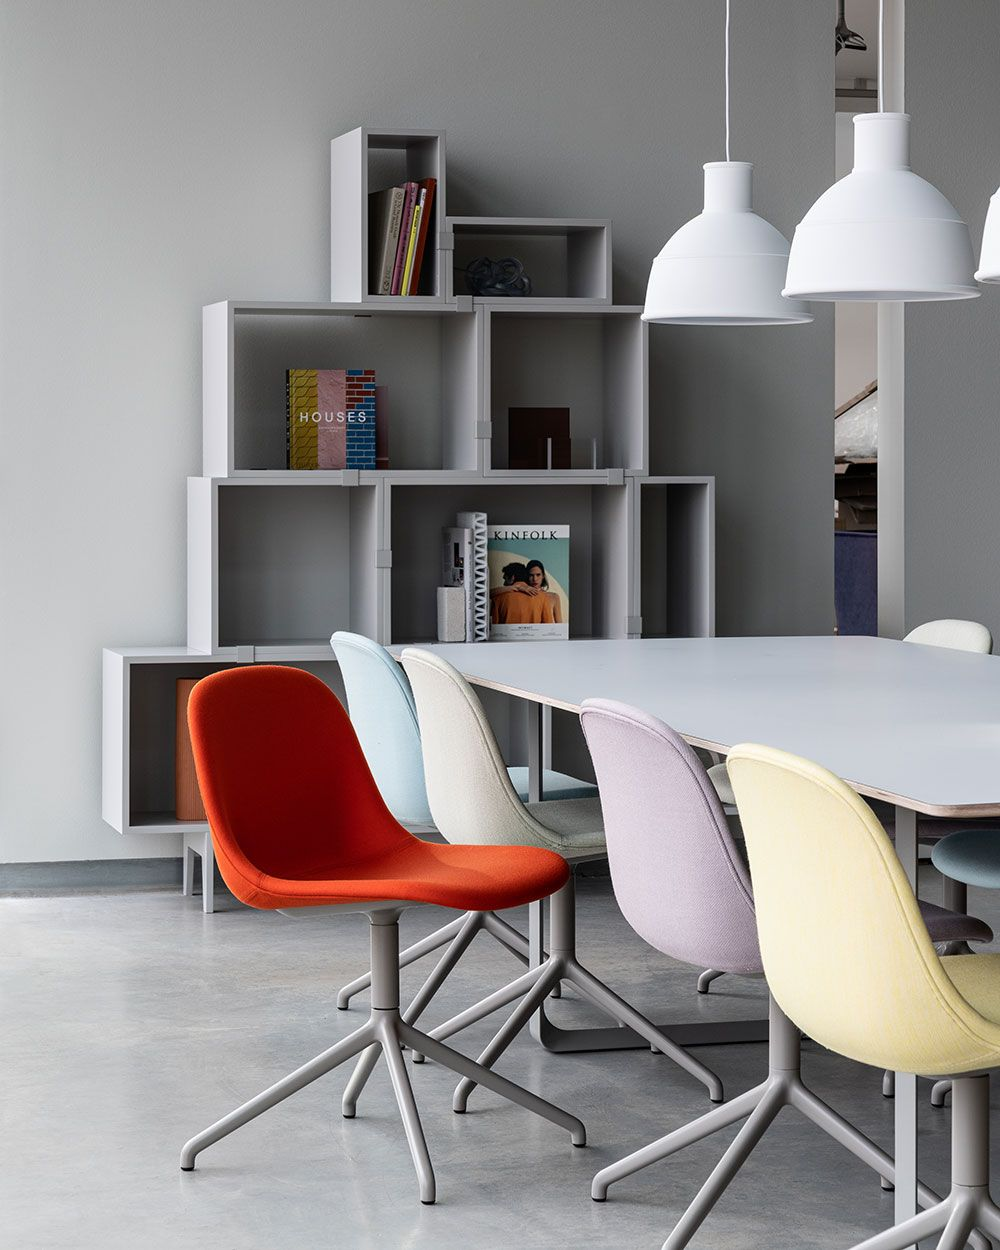 Modern And Vibrant Office Space Decor Inspiration From Muuto The Fiber Side Chair Brings A New P In 2020 Office Chair Design Side Chairs Scandinavian Furniture Design